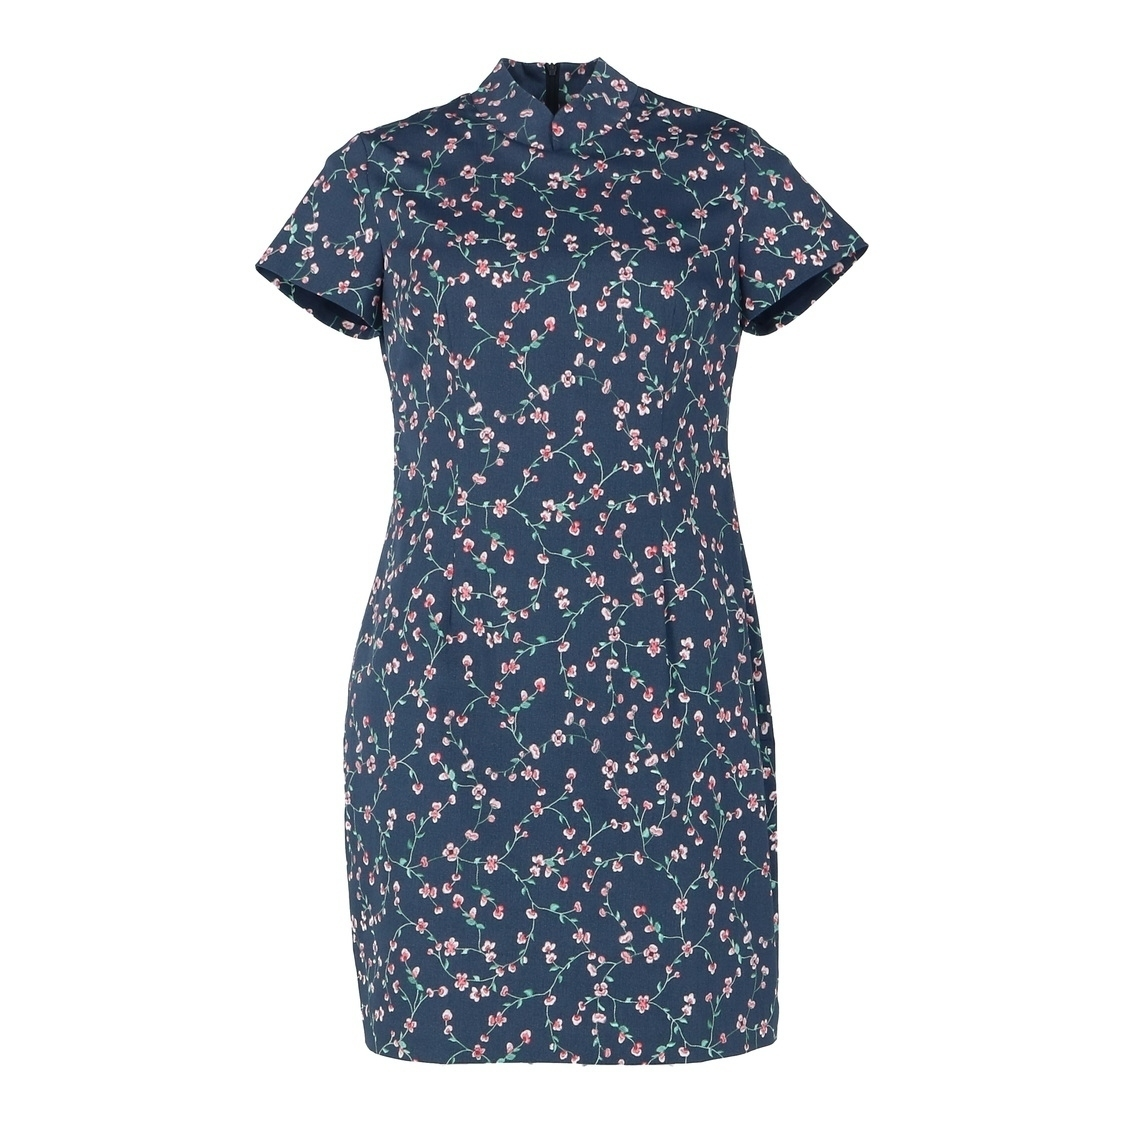 Cheongsam Short Sleeve Floral Printed Dress